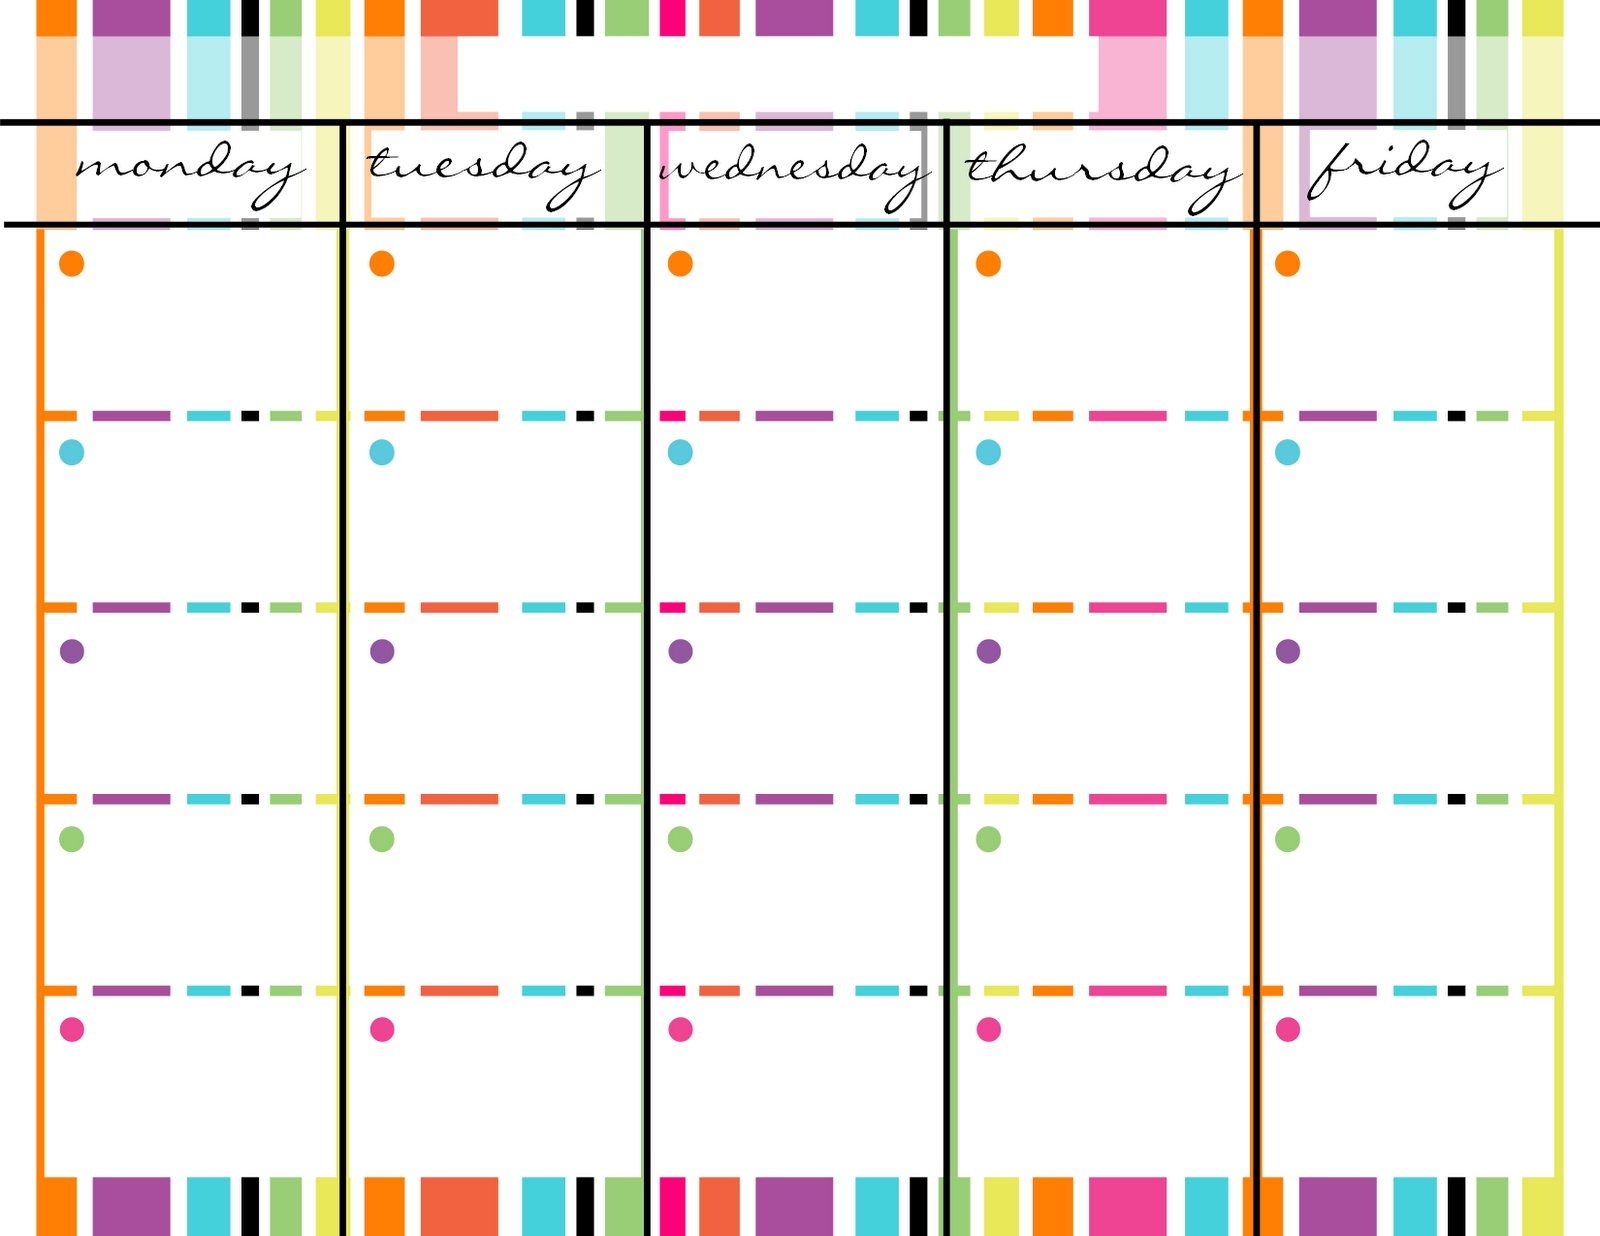 Blank Monday Through Friday Printable Calendar | Weekly